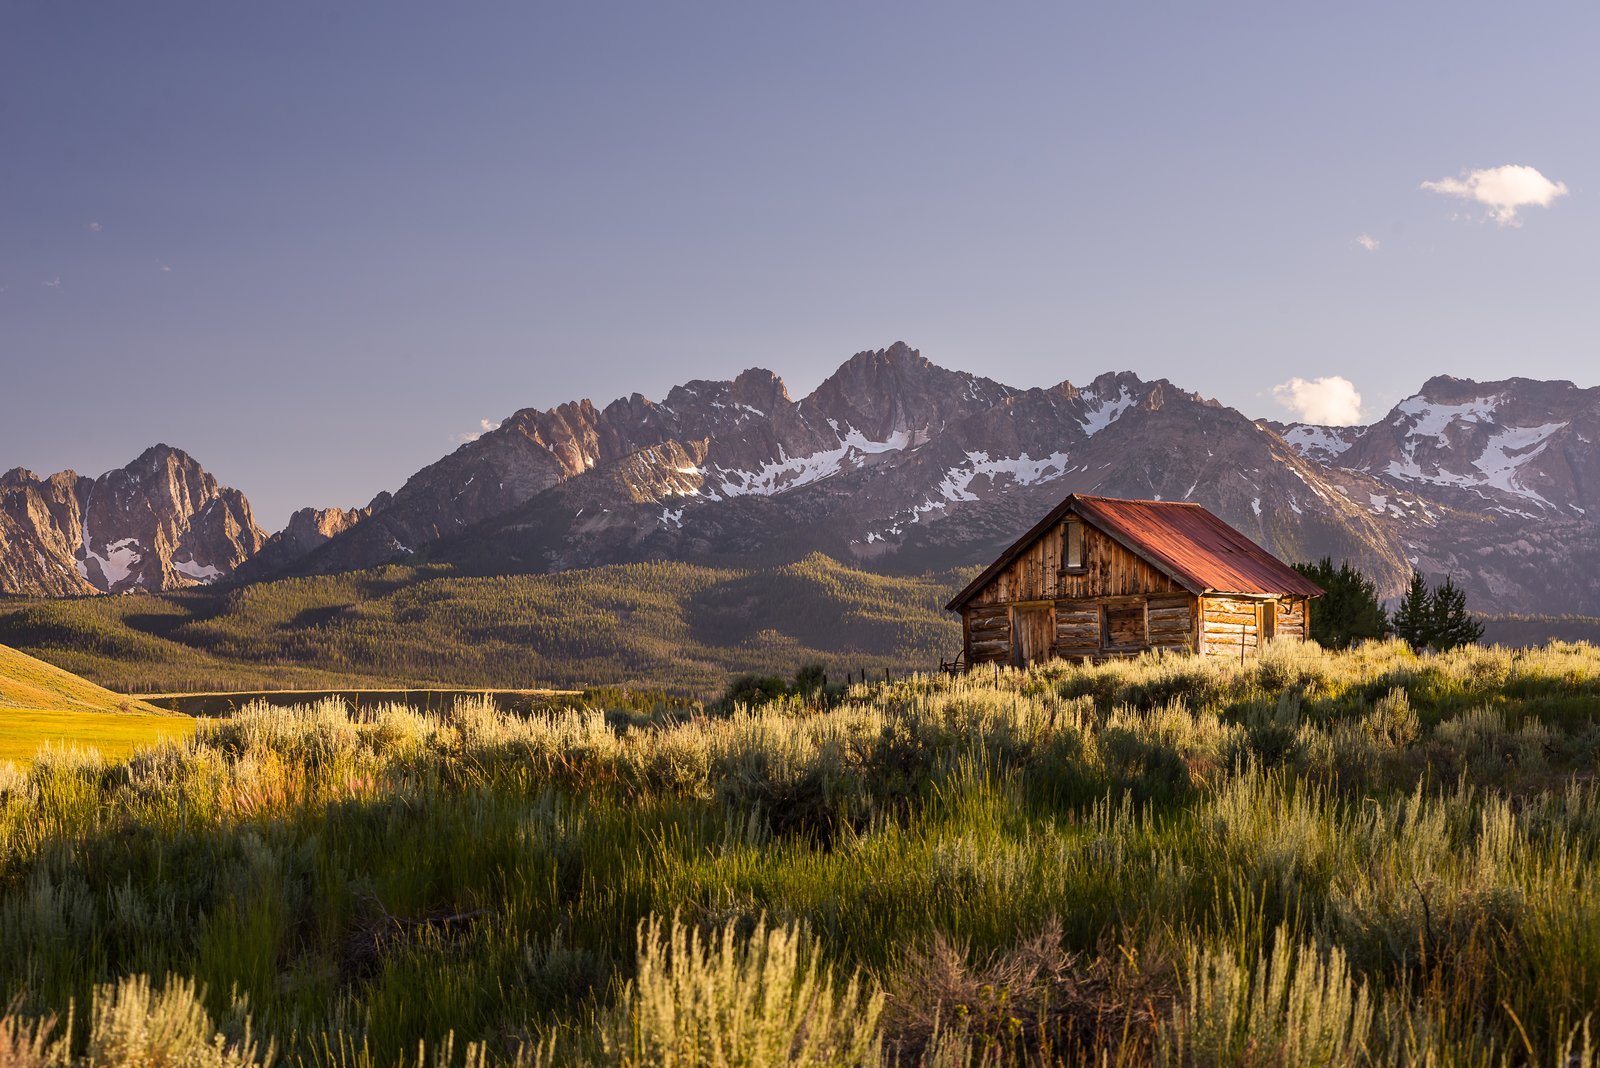 Evening light in the Sawtooth mountains of Idaho. Who wouldn't want to have a cabin here?  Cabins & Hideouts from Art and Architechture